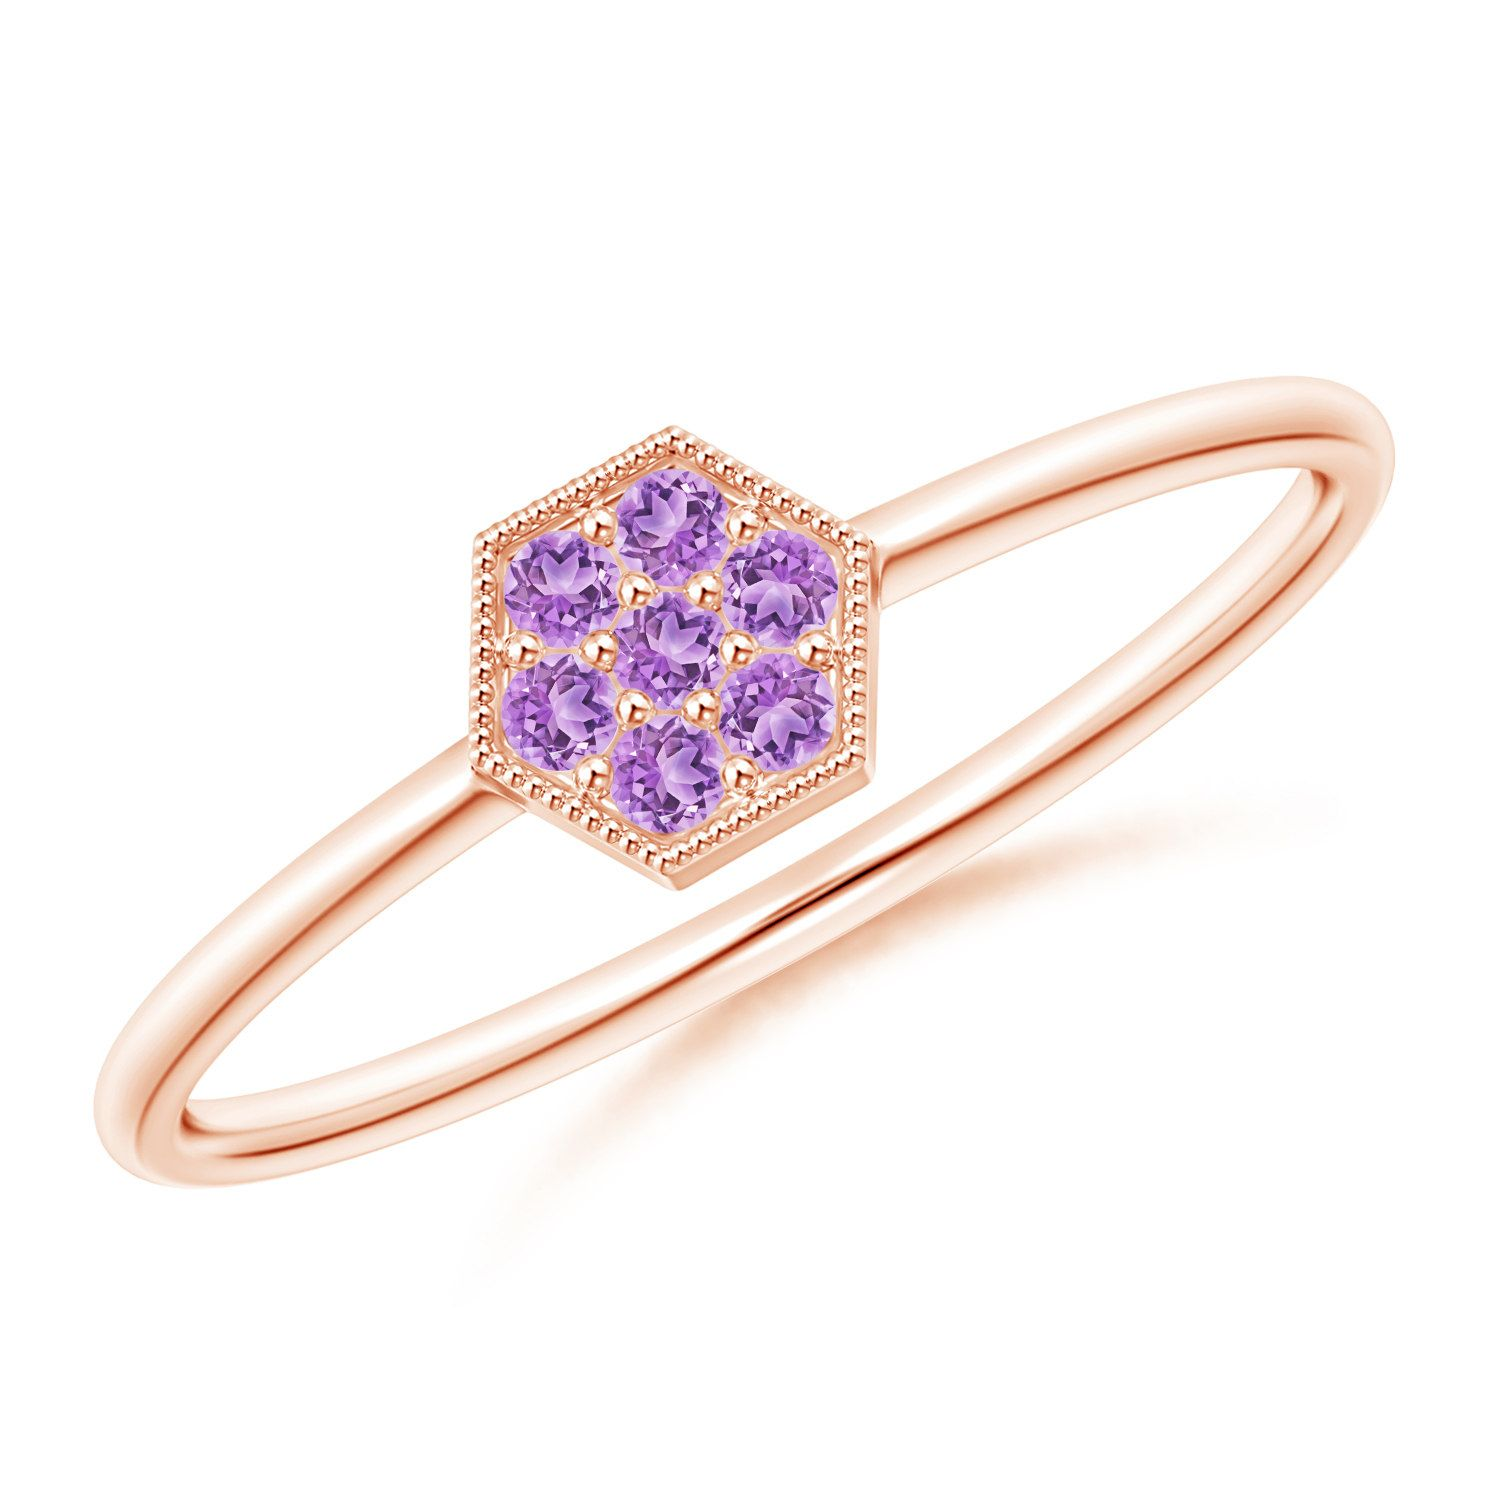 Angara Natural Amethyst Solitaire Ring in Rose Gold ZzQYq1eAZV